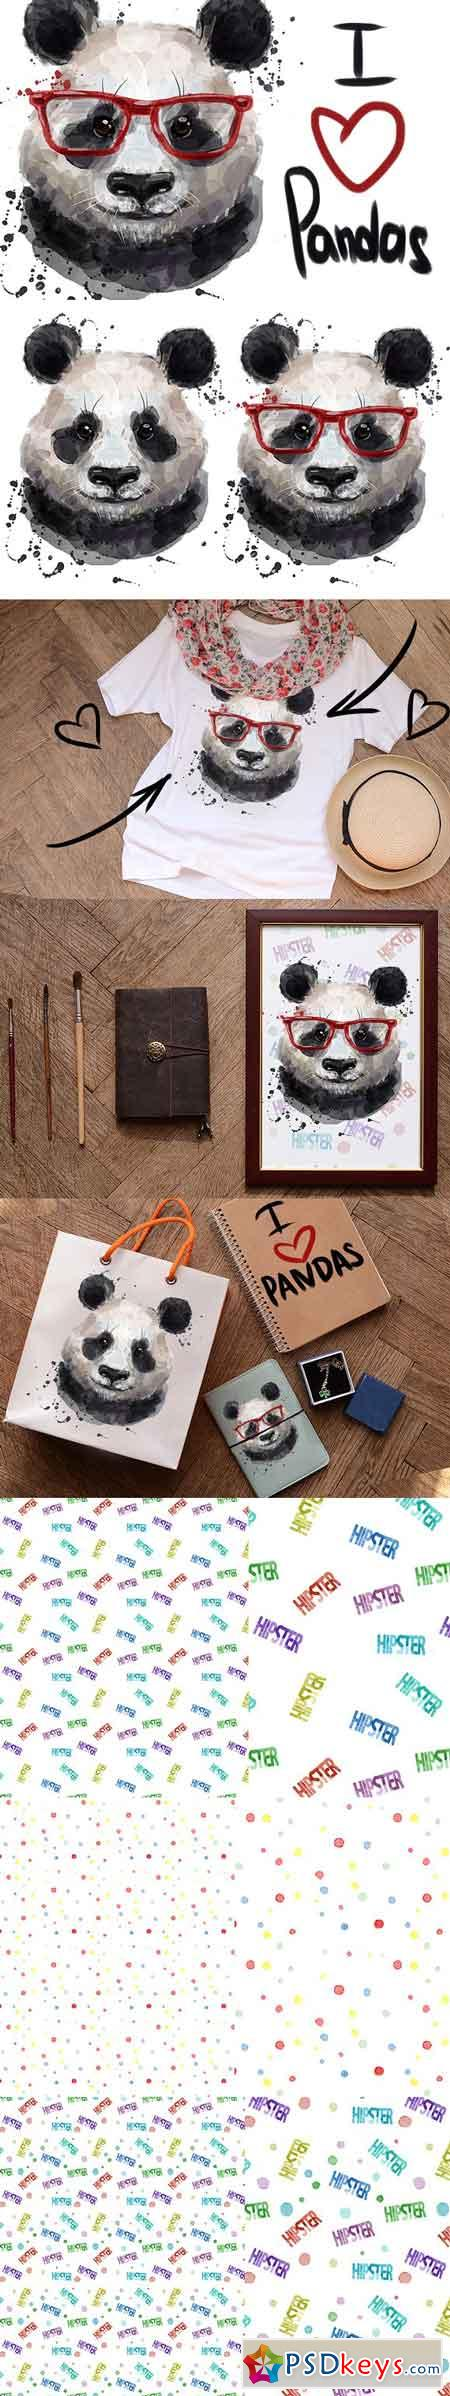 watercolor cute panda 1828180